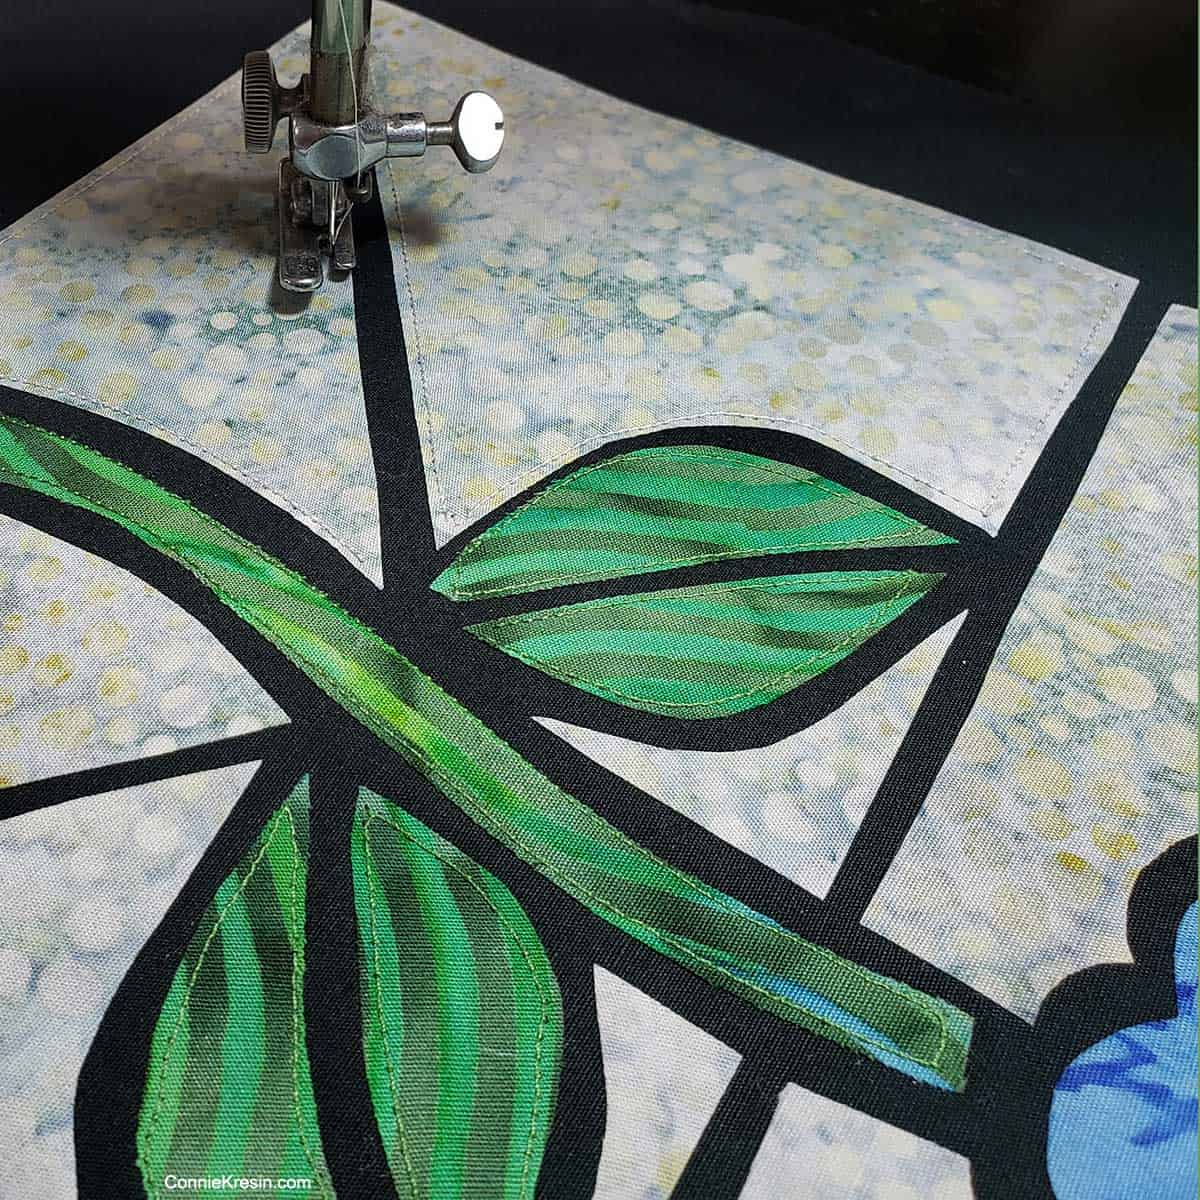 Working on stained glass quilt project